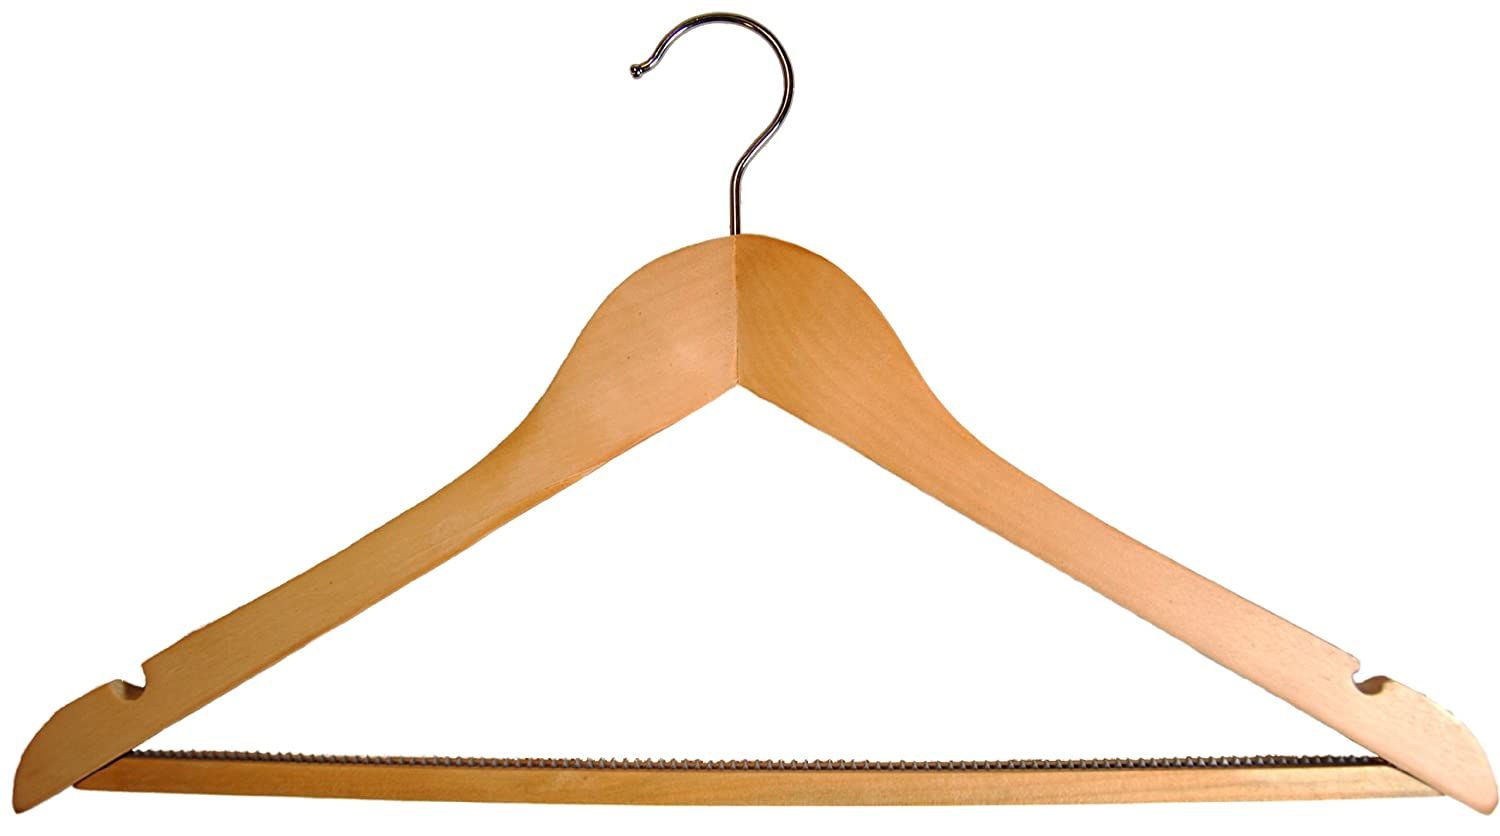 10 natural wooden angled coat clothes hangers with non slip bar and notches for suits tops shirts dress quantity amazoncouk kitchen